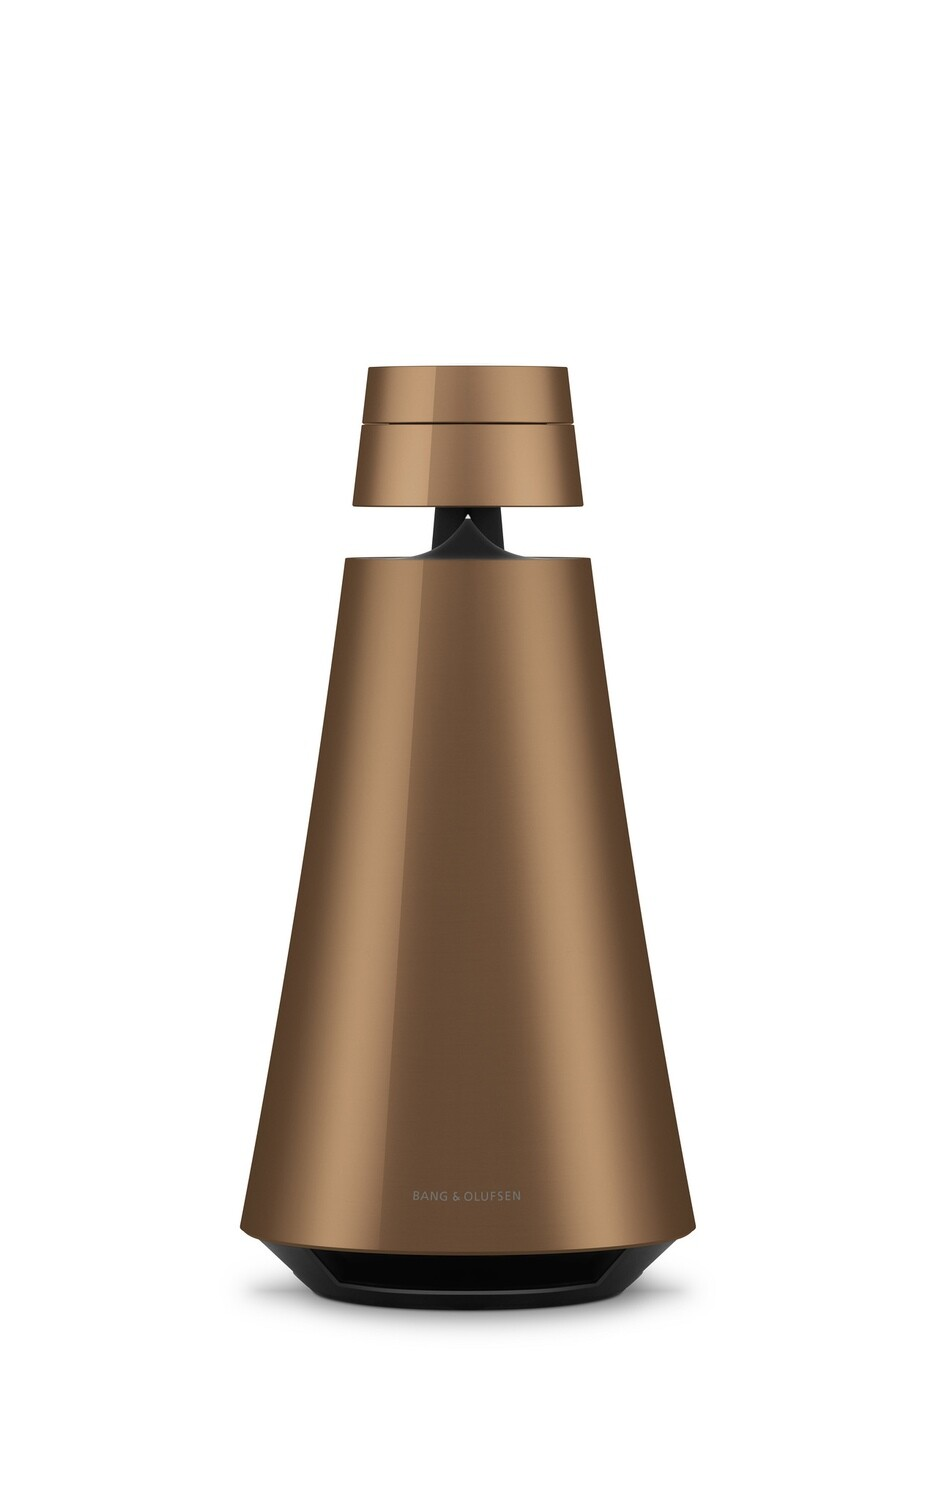 Beosound 1 2nd Generation mit Google Assistant, Bronze Tone